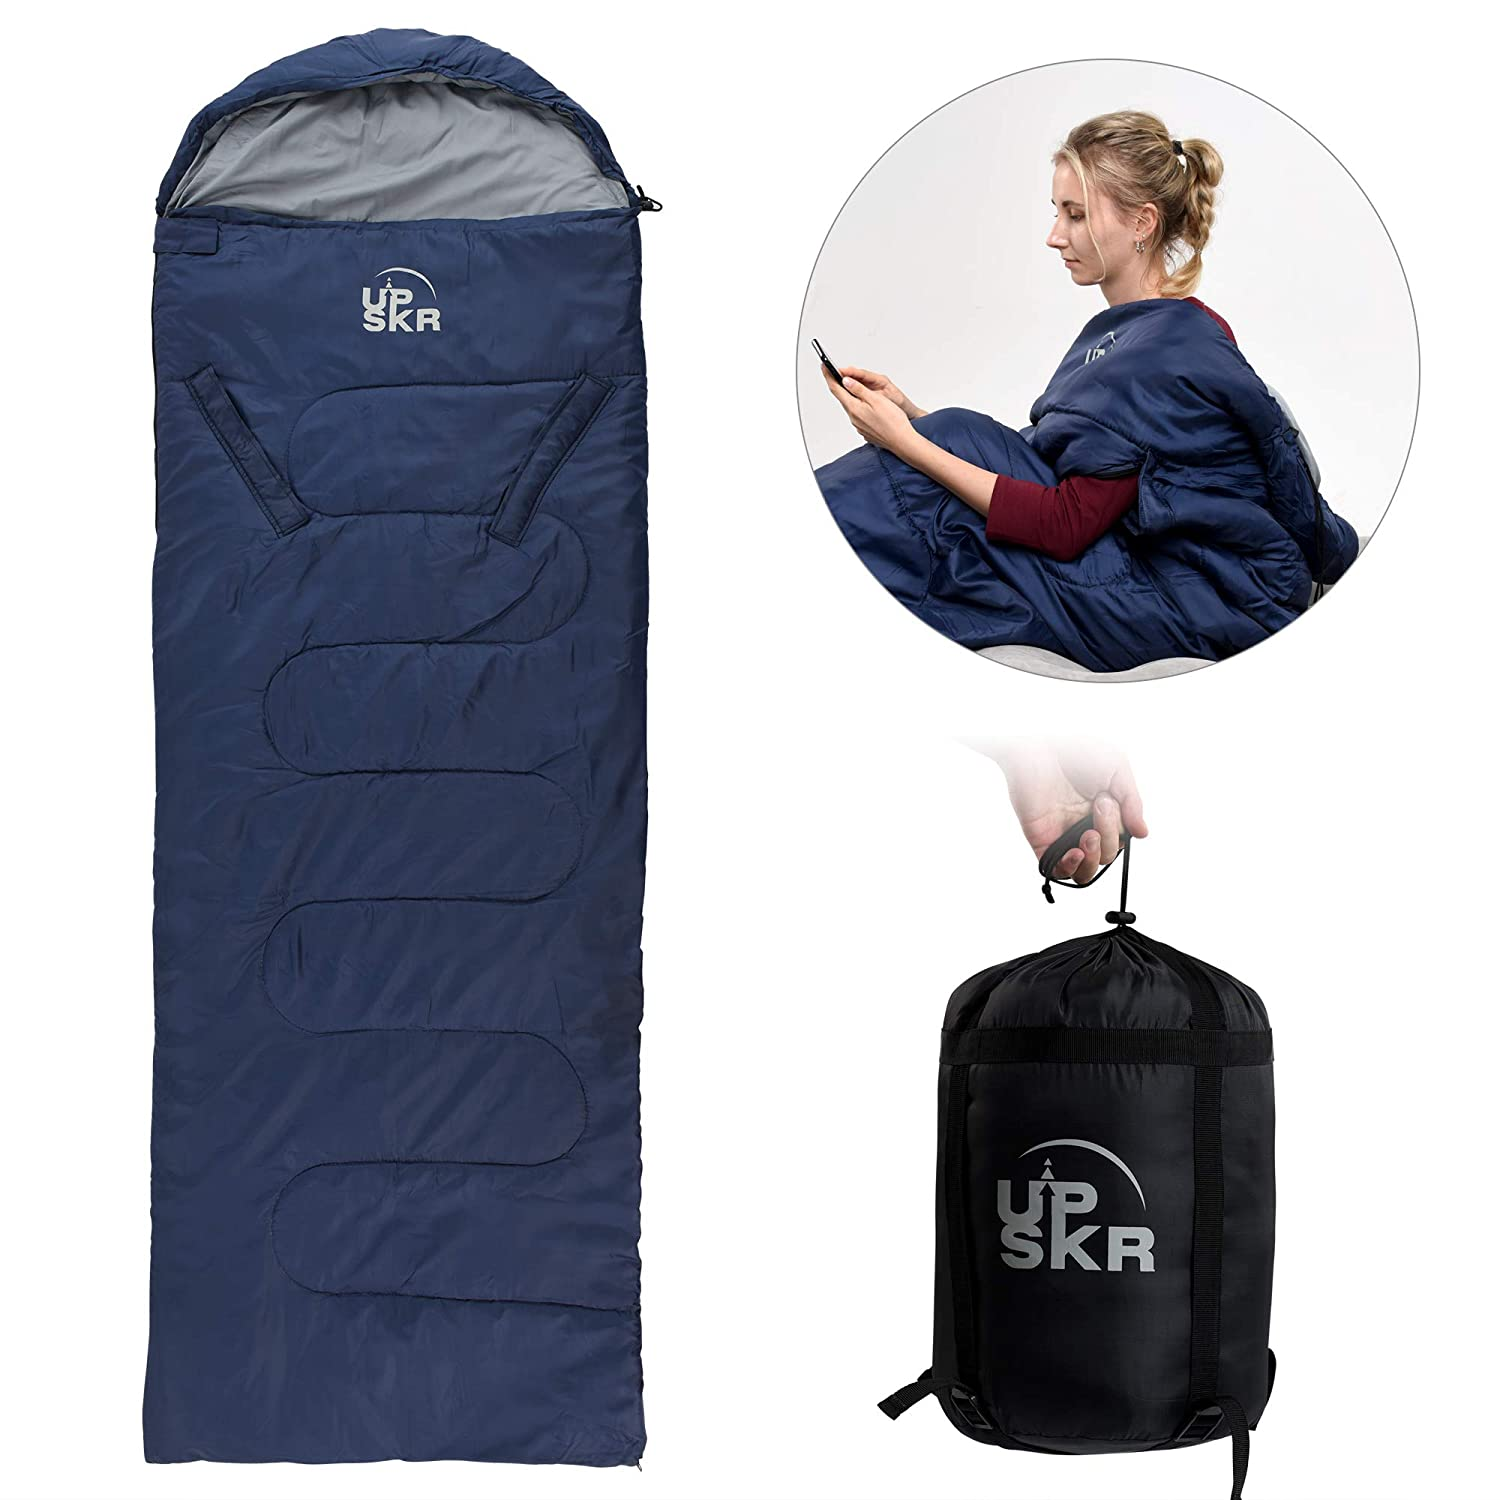 UPSKR Sleeping Bag Lightweight Waterproof for Adults Kids Cold Weather, 4 Season Rectangular Sleeping Bags Great for Indoor Outdoor Use Hiking Backpacking Camping Traveling with Compression Sack